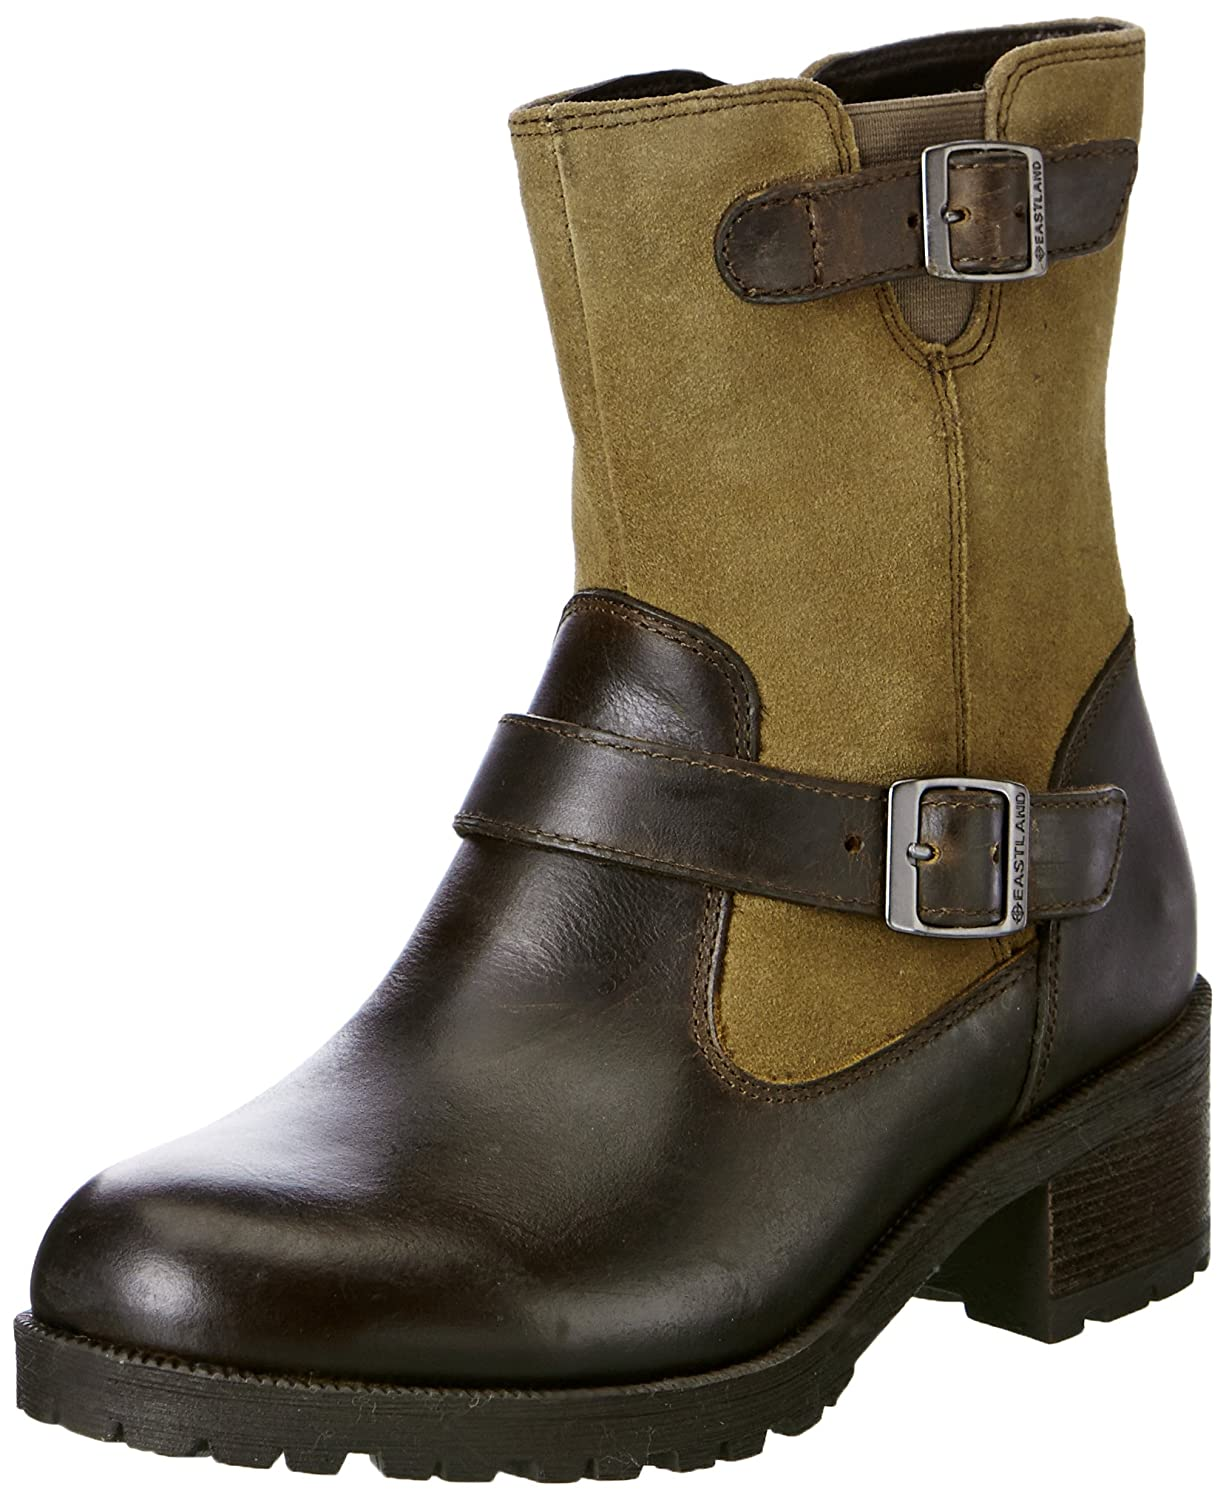 Eastland Women's Belmont Boot B00P2XQJX2 8 B(M) US|Bomber Brown